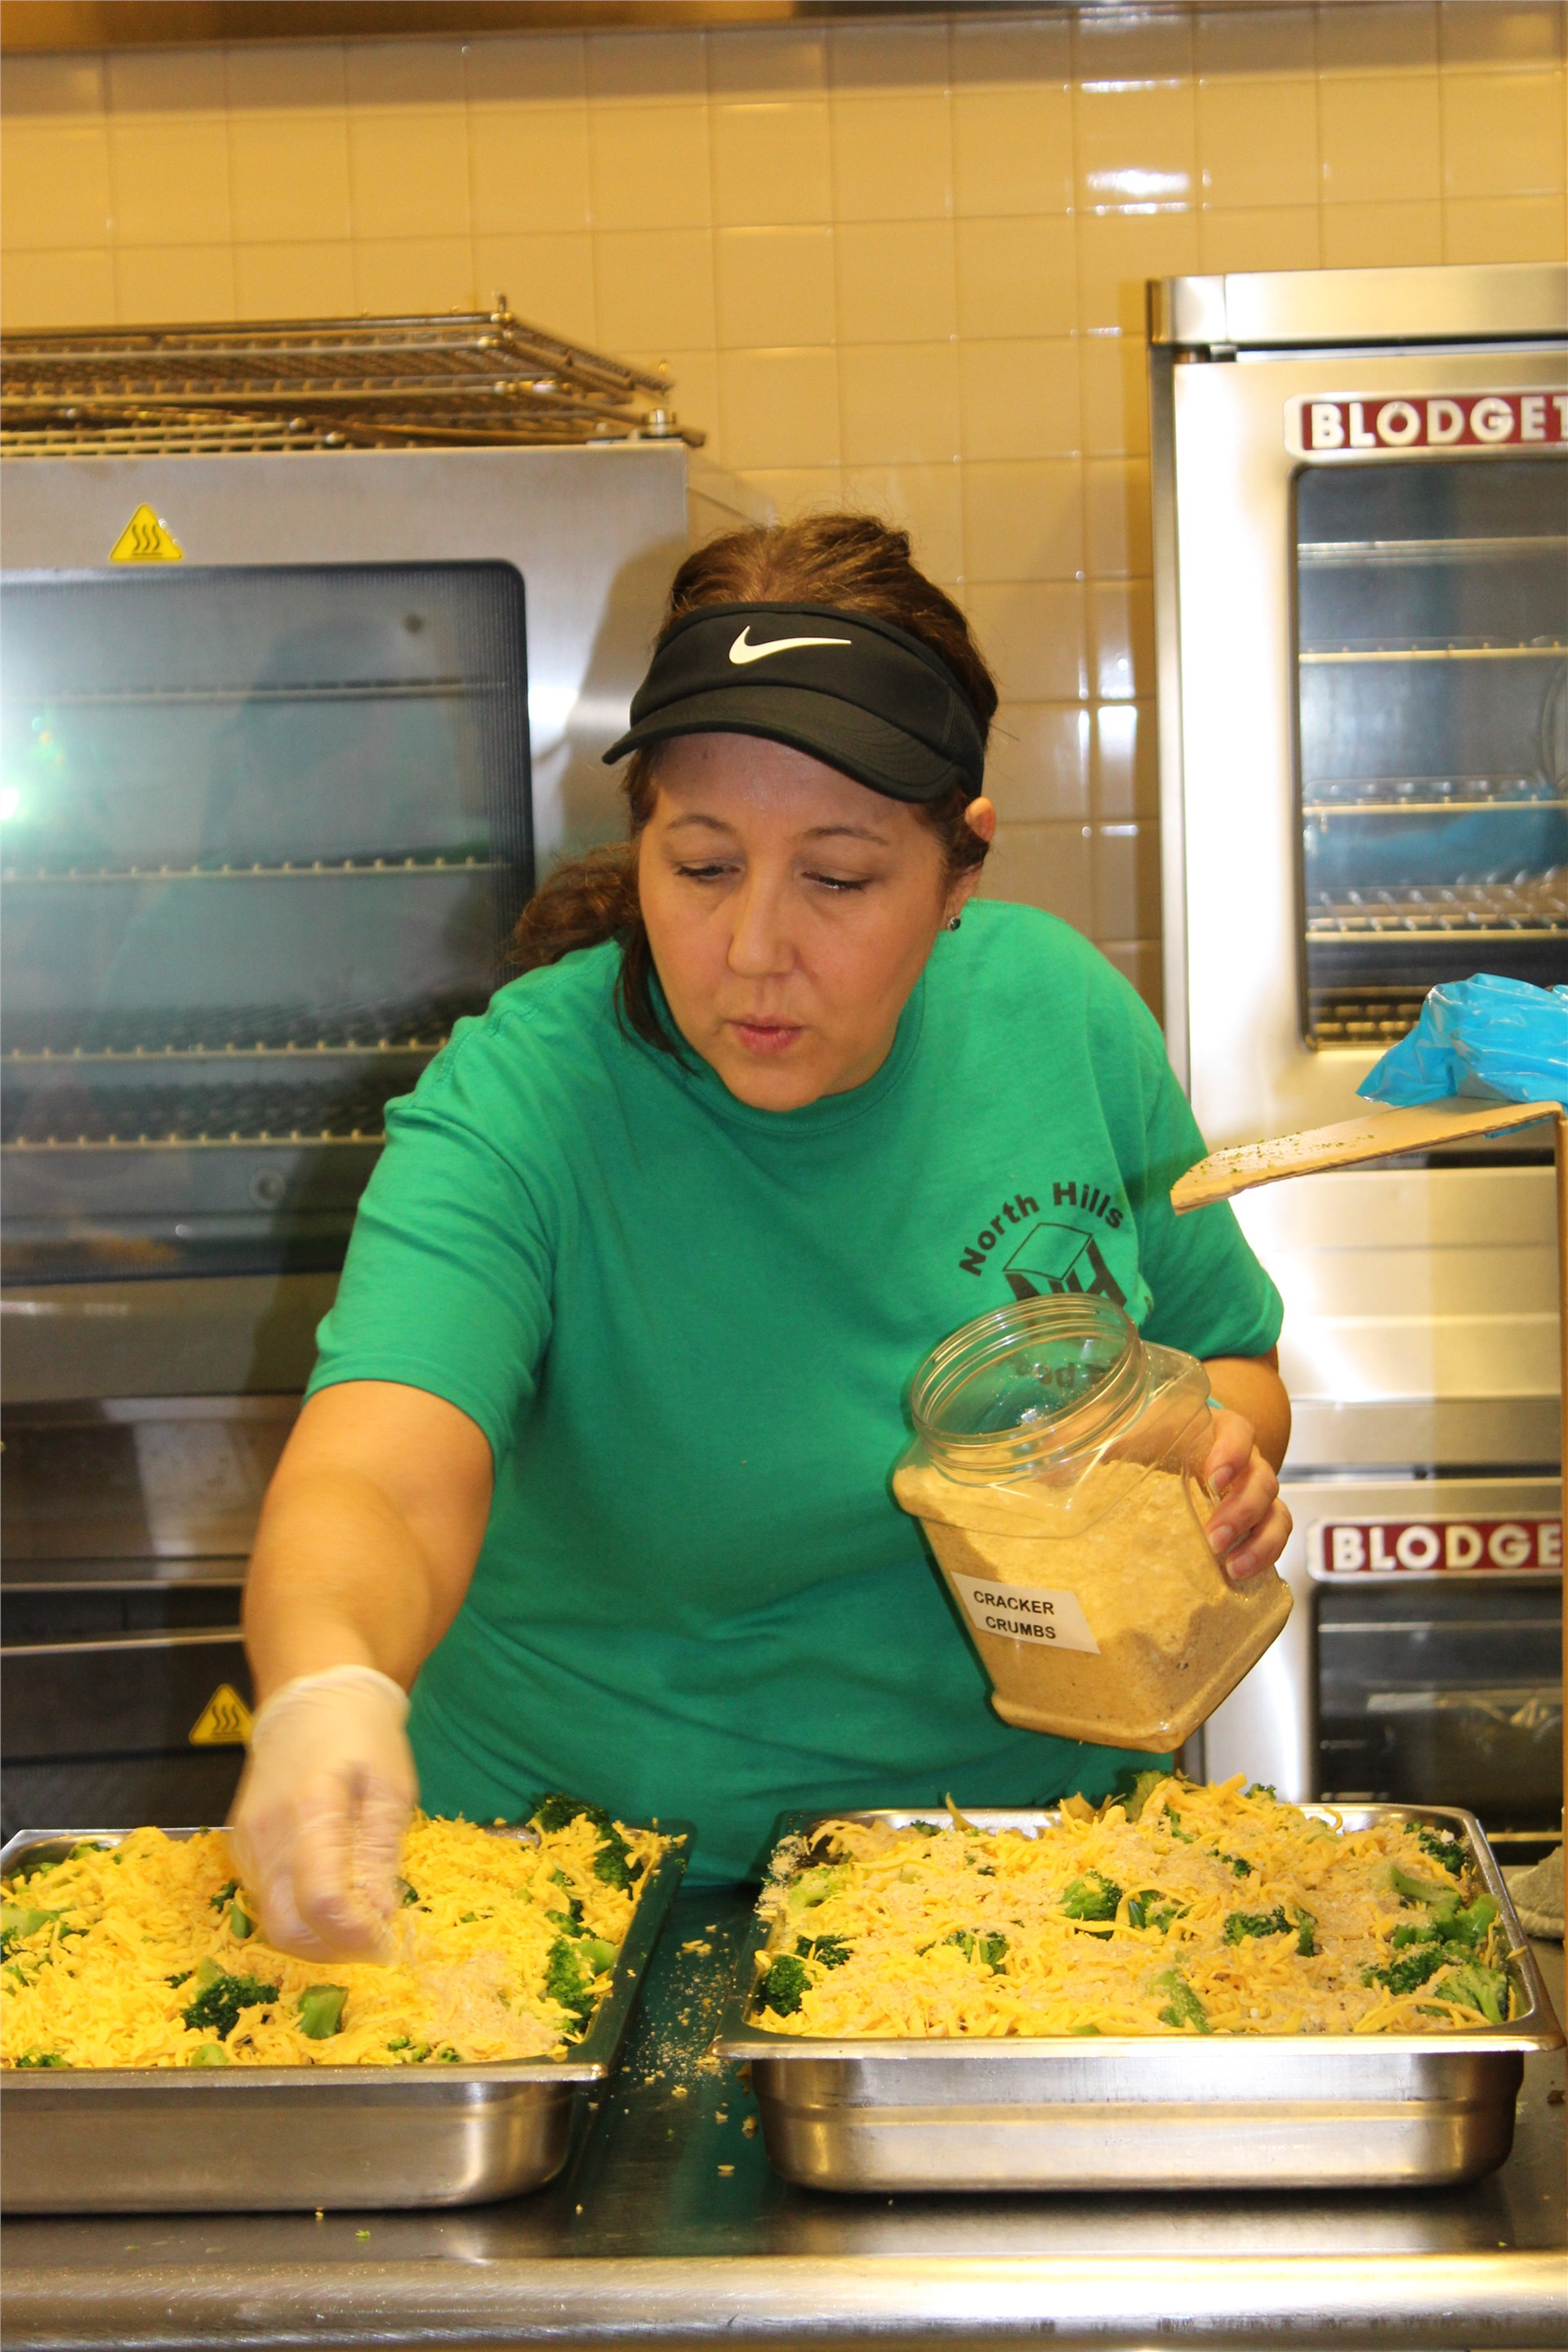 Food Service Employee Makes Broccoli and Cheese Dish for Student Lunch